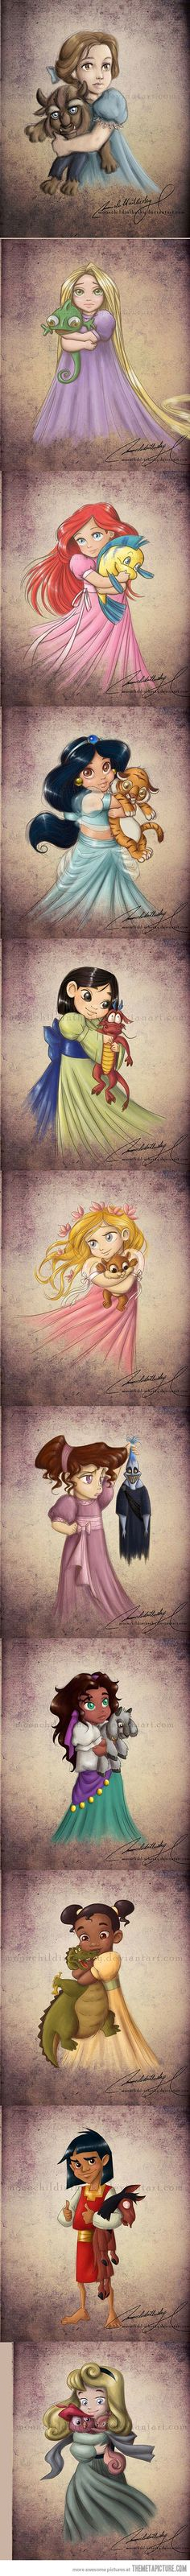 Little Disney Princess and their Pets.